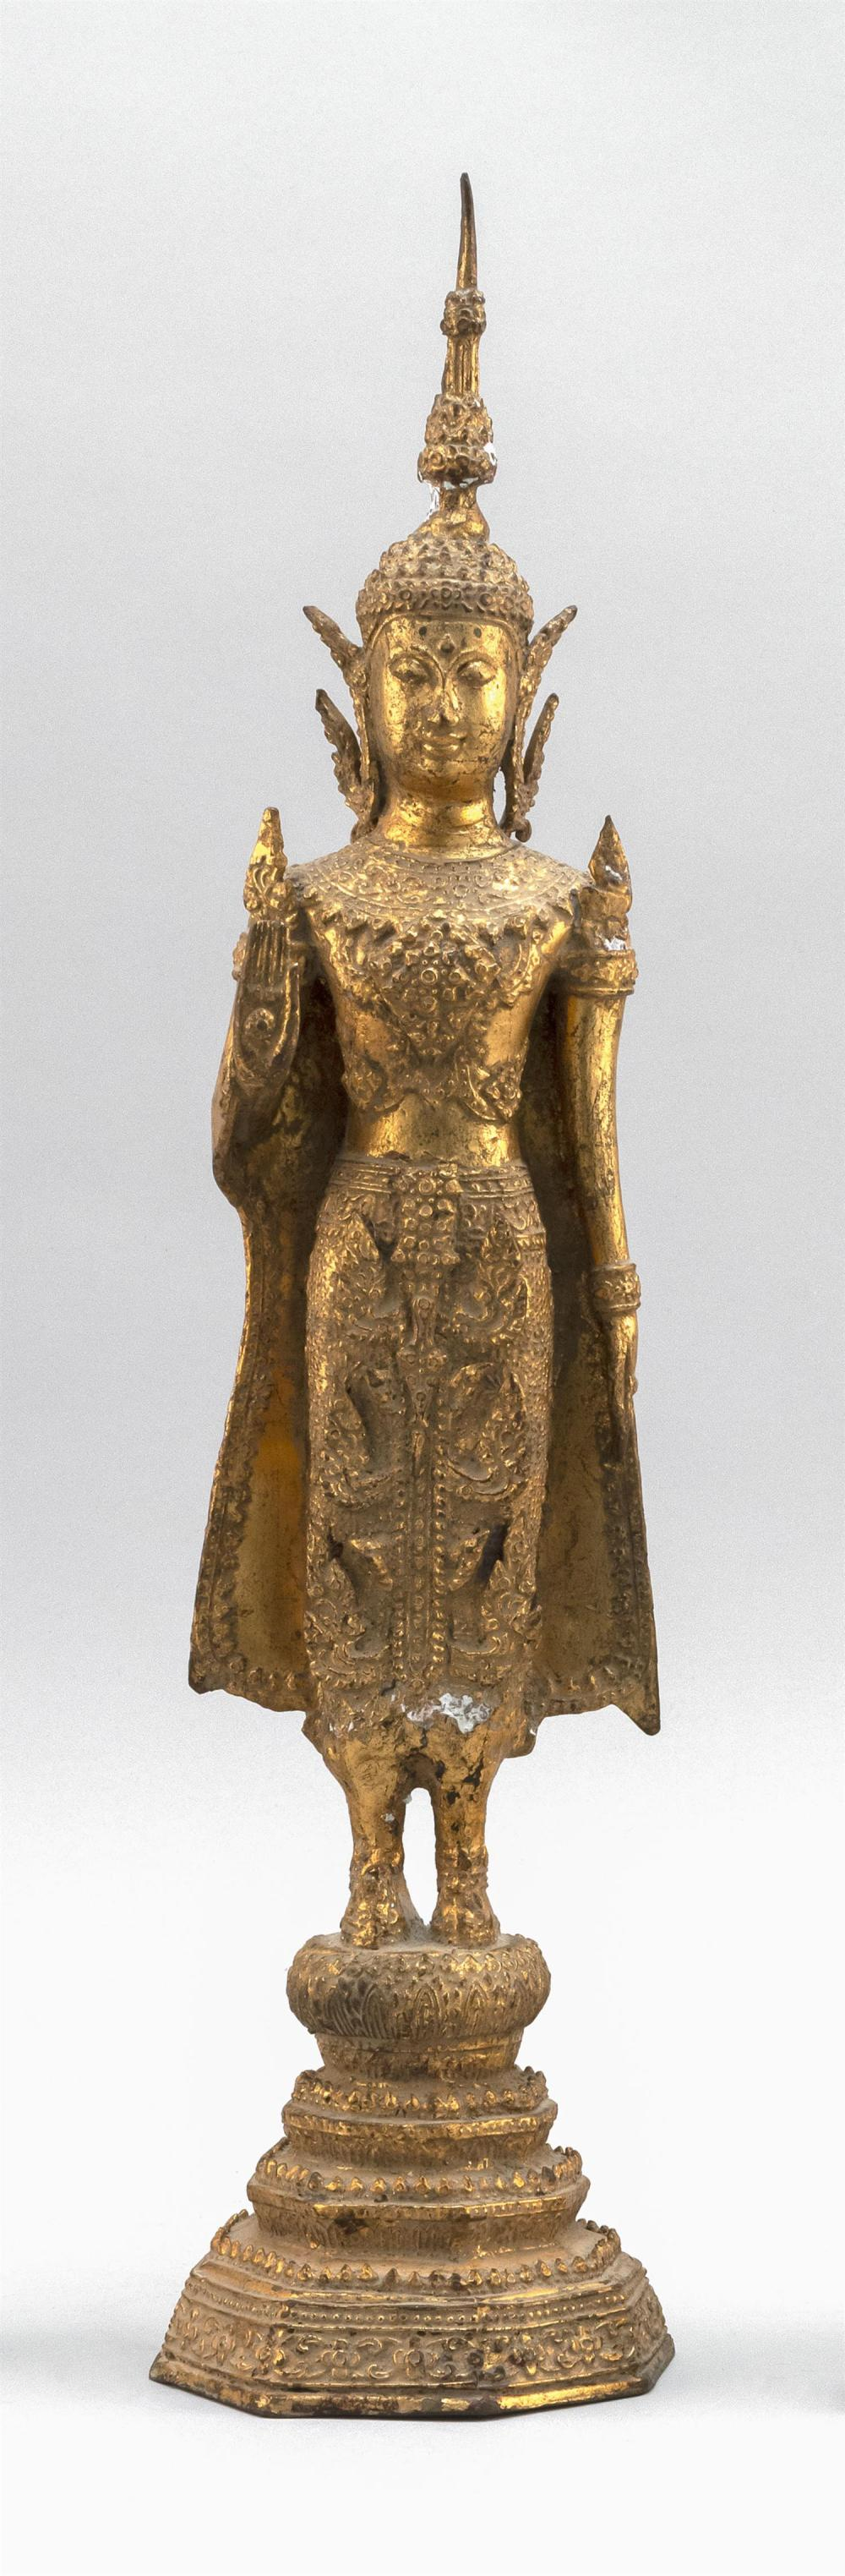 TIBETAN GILT-BRONZE FIGURE OF BUDDHA Standing on a conforming tiered base, dressed in ceremonial headdress and robes and with the ri...